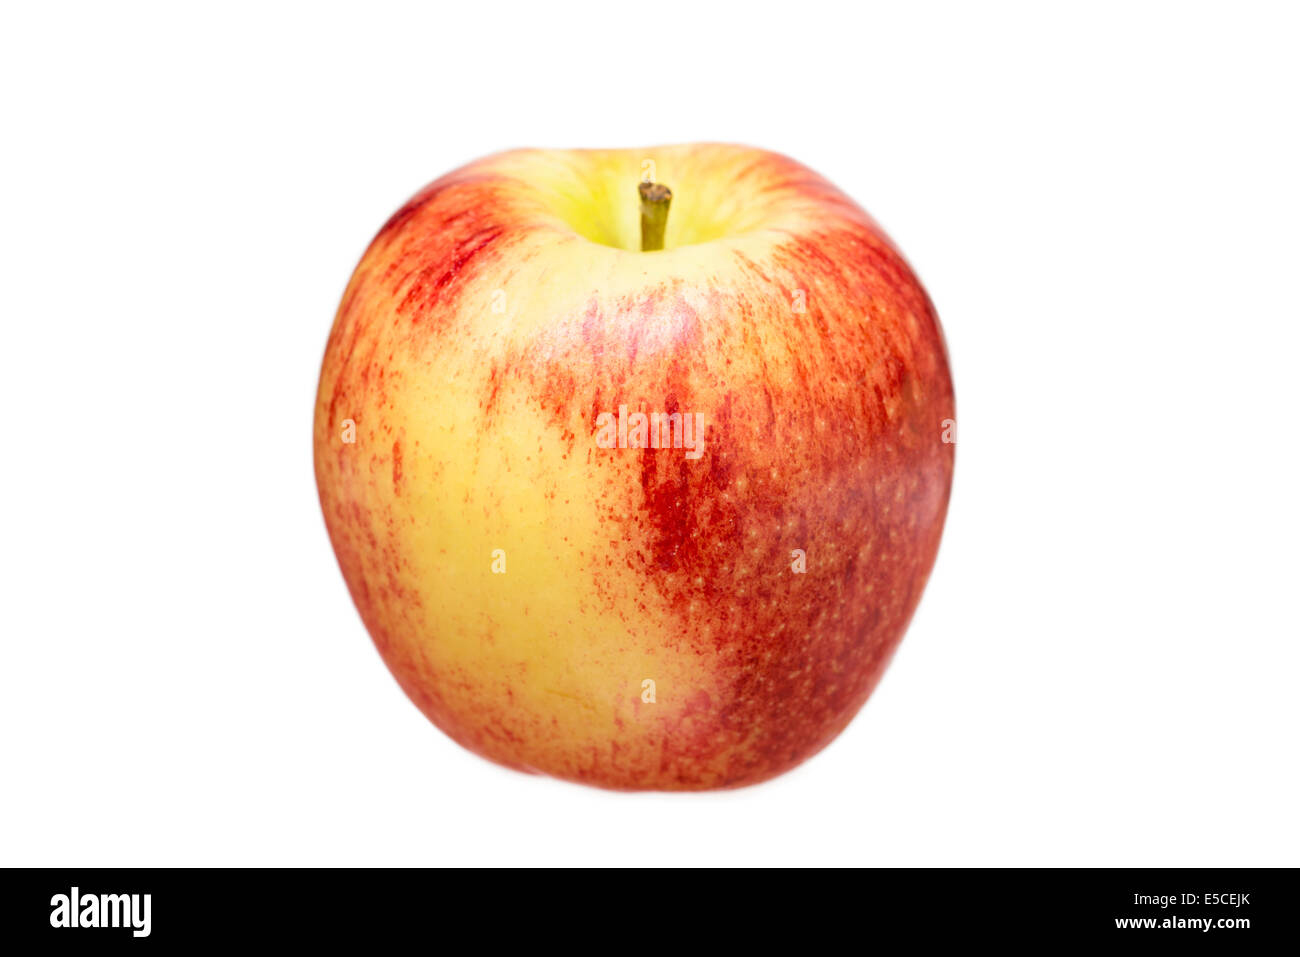 Apple, One Gala Apple, Red - Stock Image